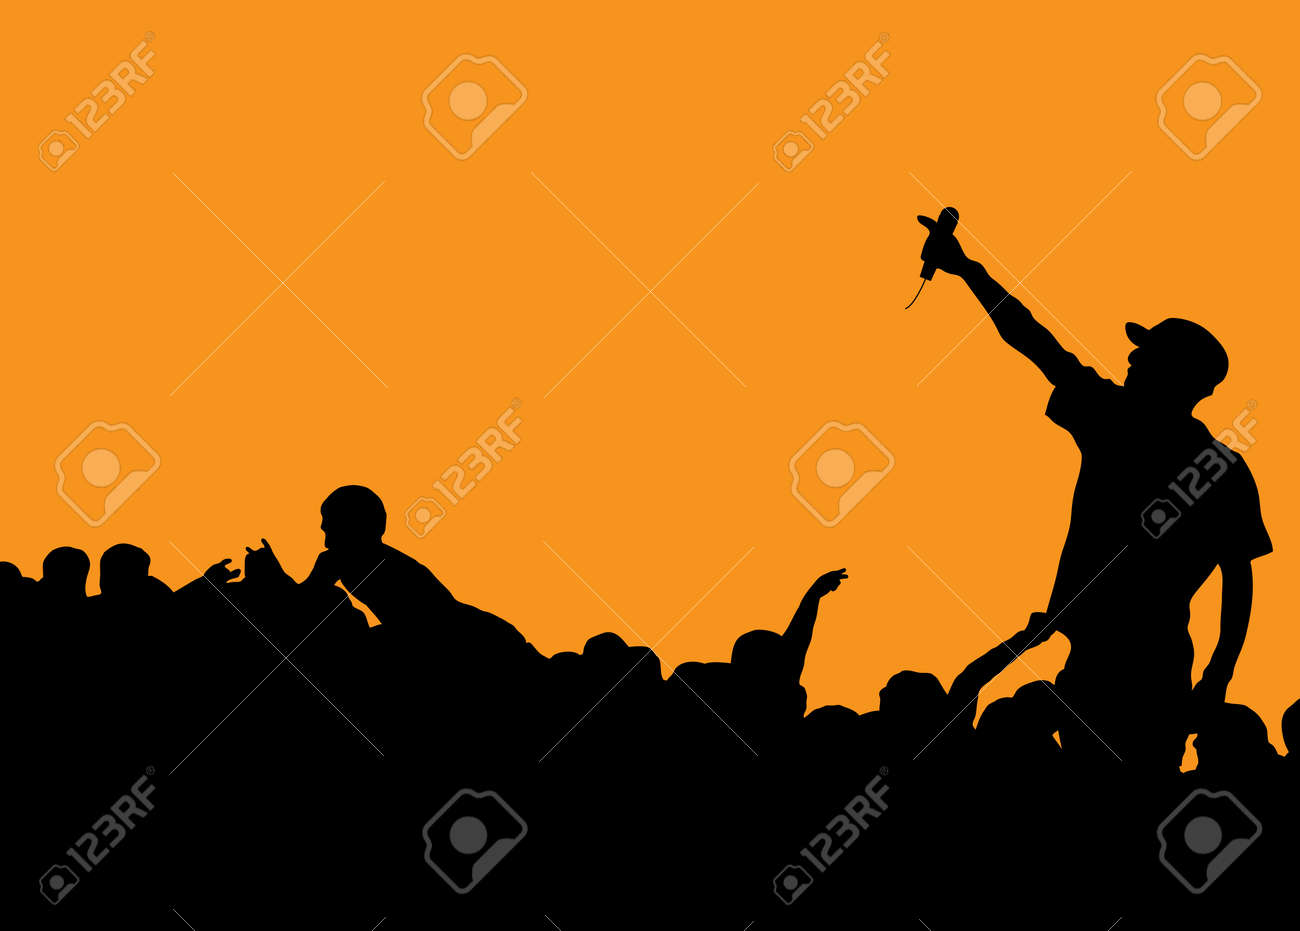 Pics photos rock concert background - Rock Concert With Singer Talking To The Crowd On An Orange Background Stock Vector 2570715